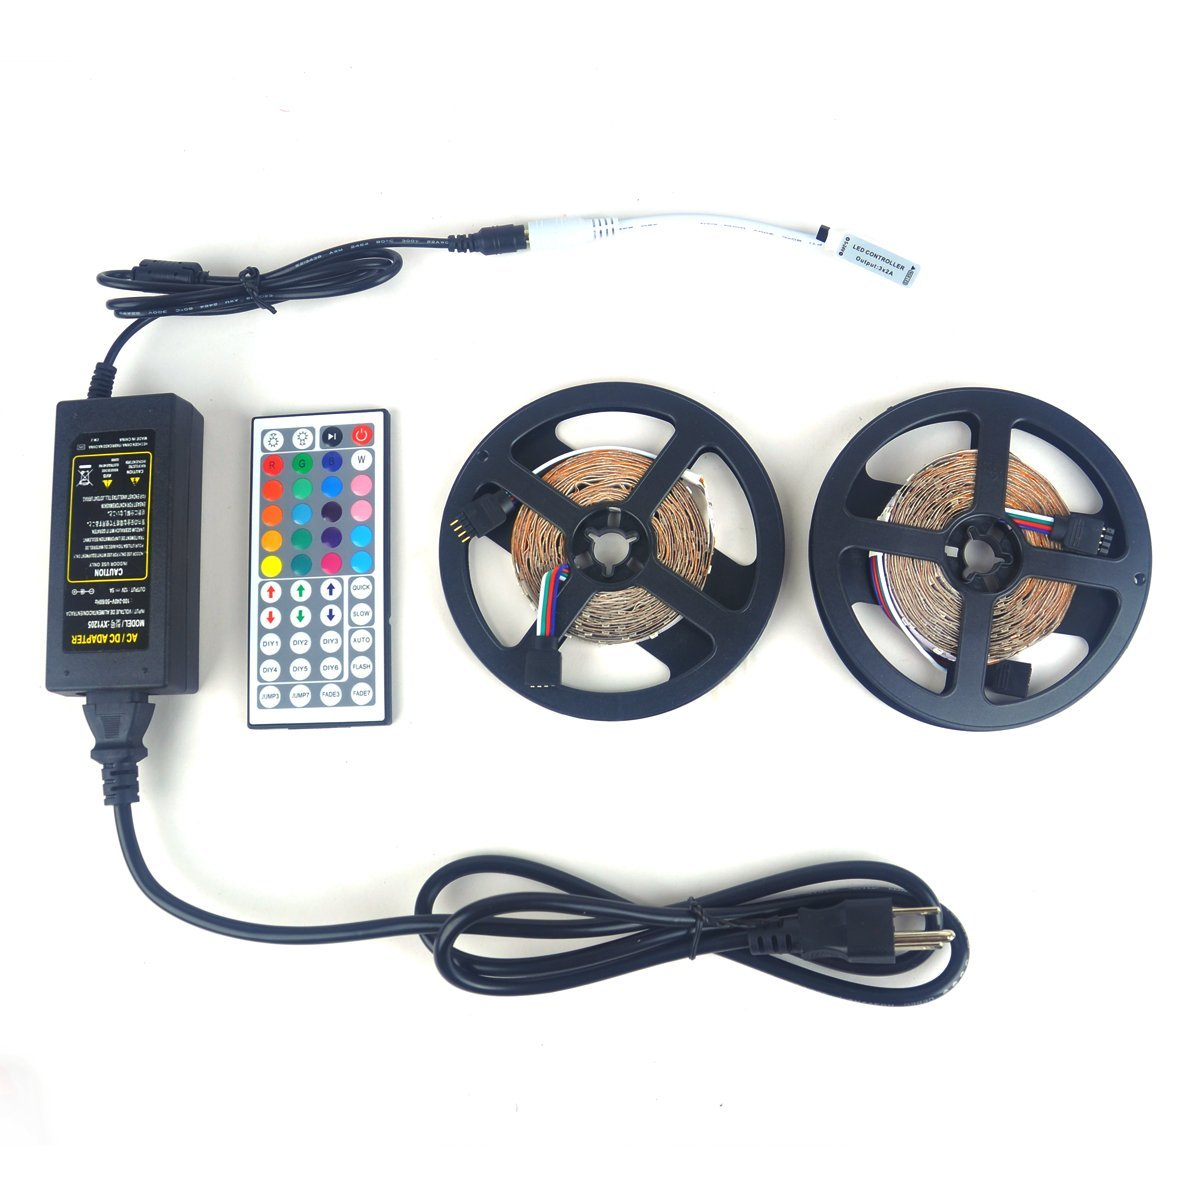 LTROP 2 Reels 12V LED Strip Lights Kit, 32.8ft Non-waterproof SMD 3528 RGB 600 LED Light Strip with Mini 44 Key Controller and 12V 5A Power Supply